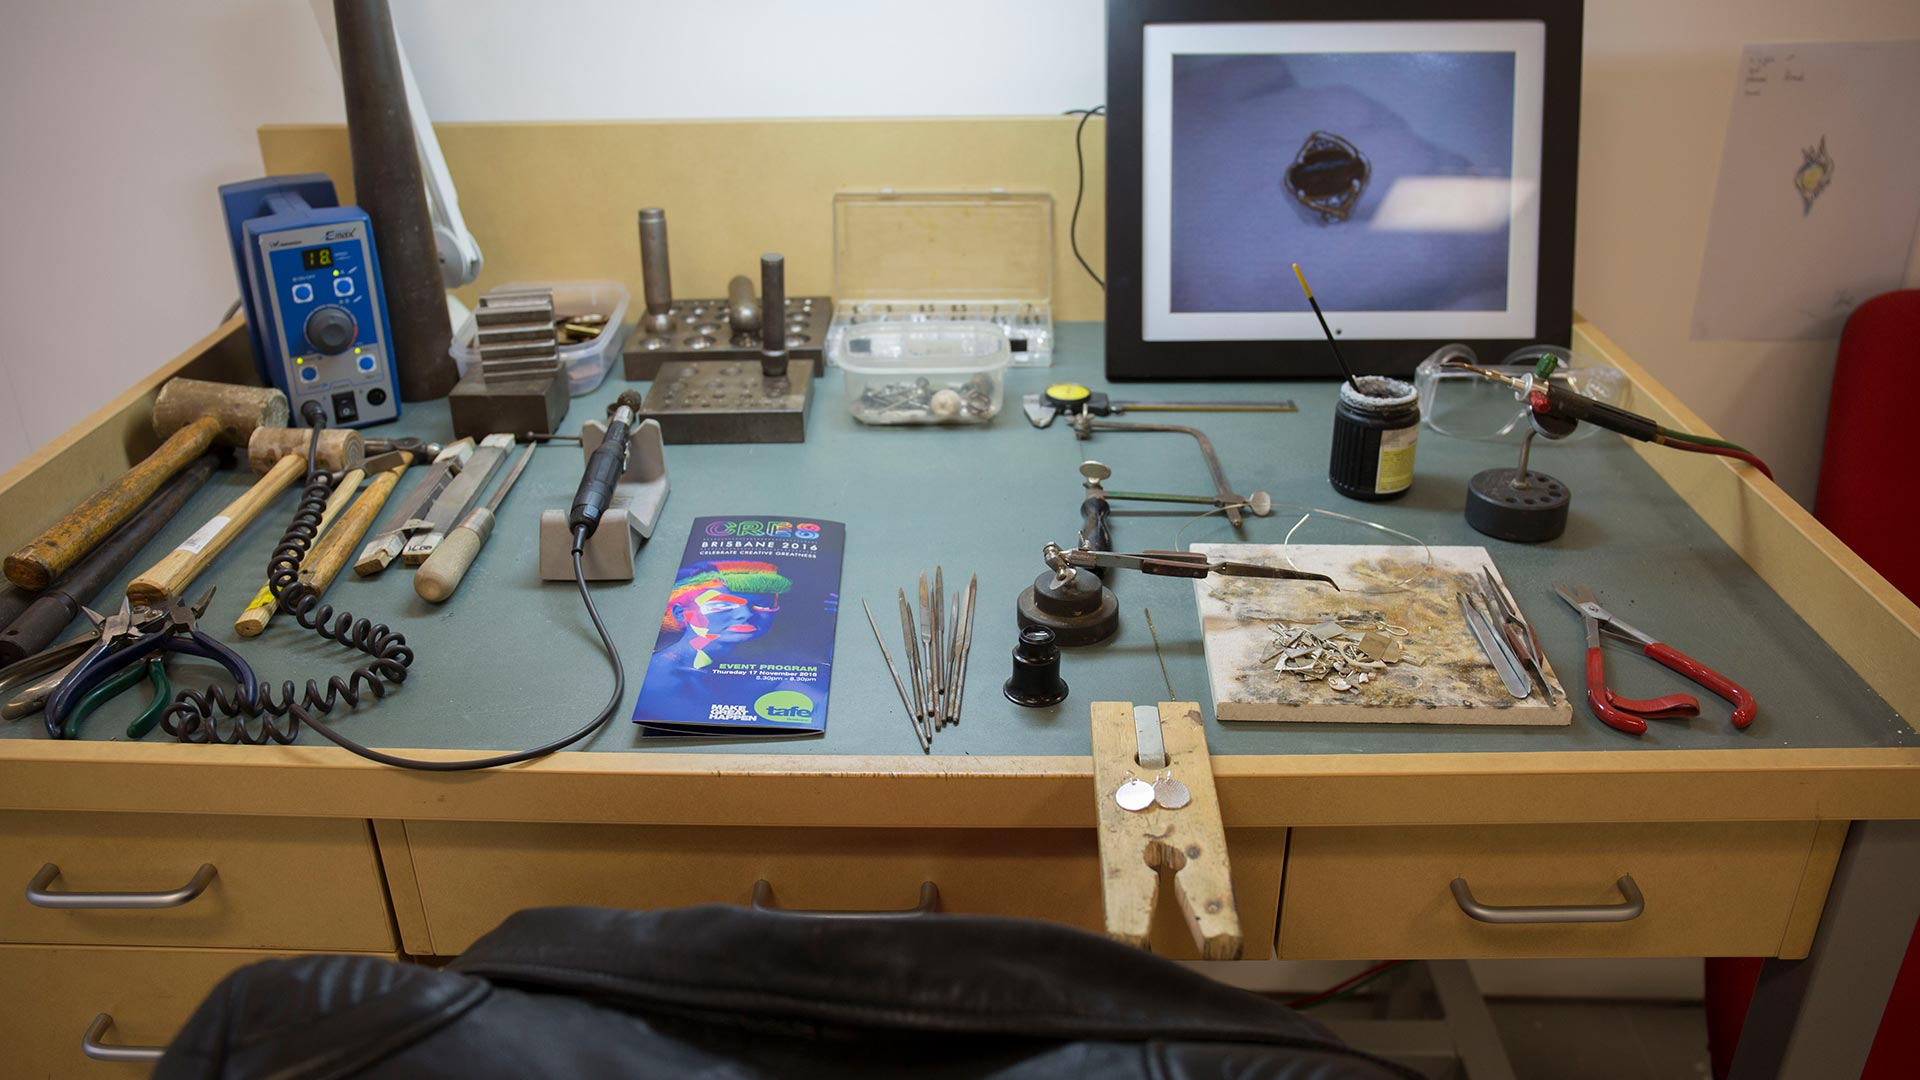 south-bank-facilities-jewellery-workshop-08.jpg